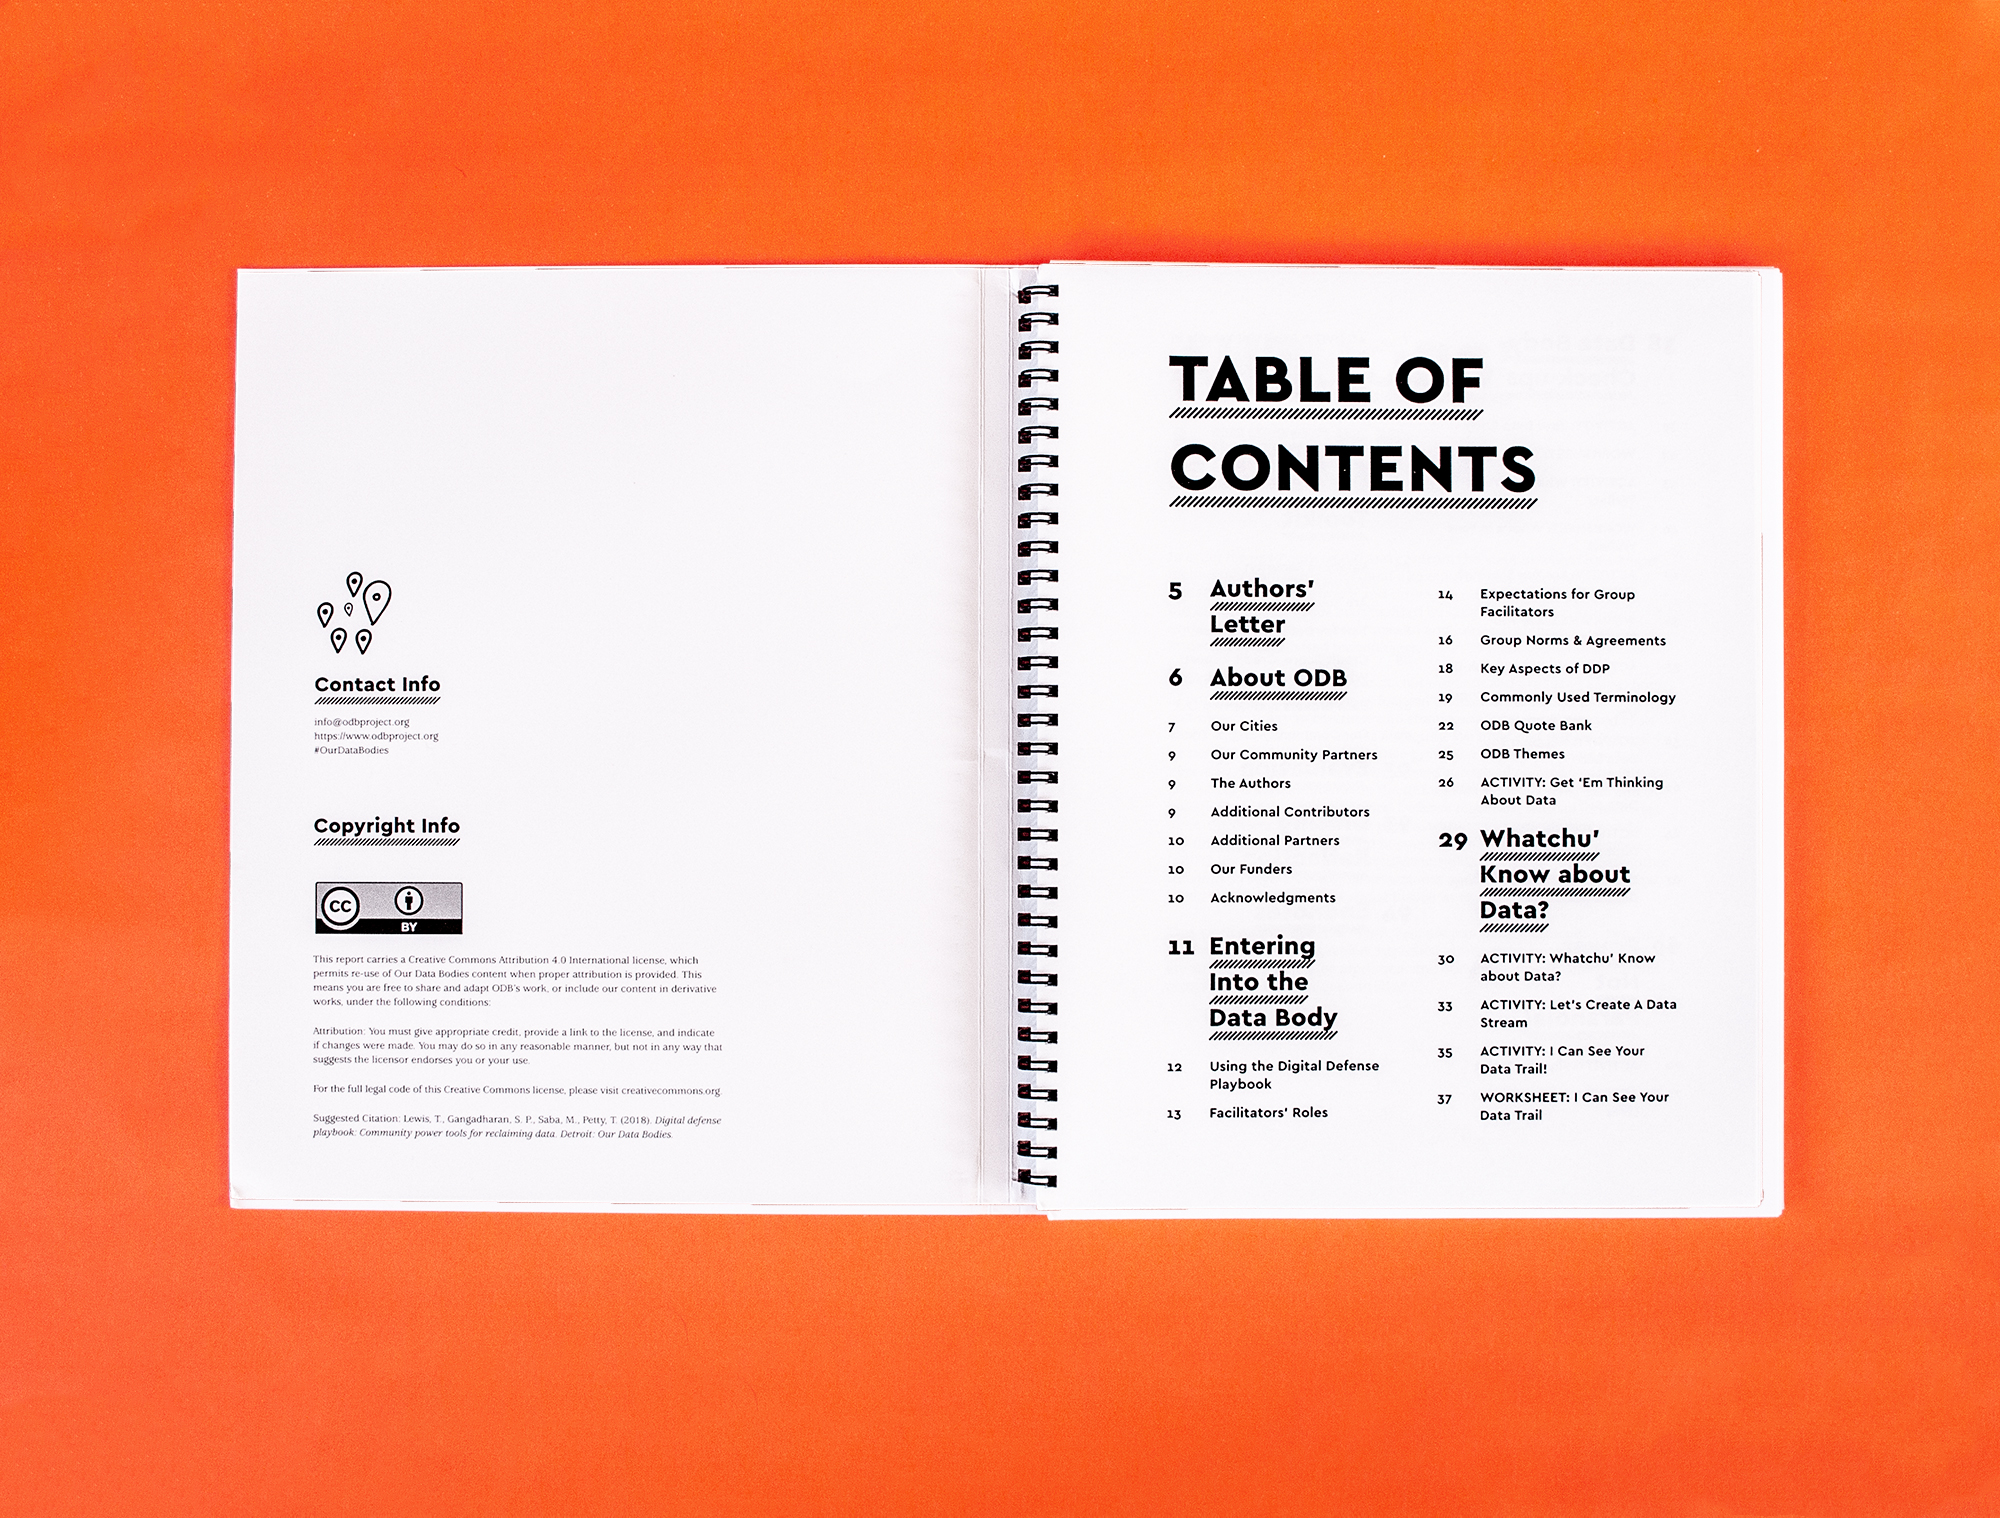 Photo: Spread of Table of contents